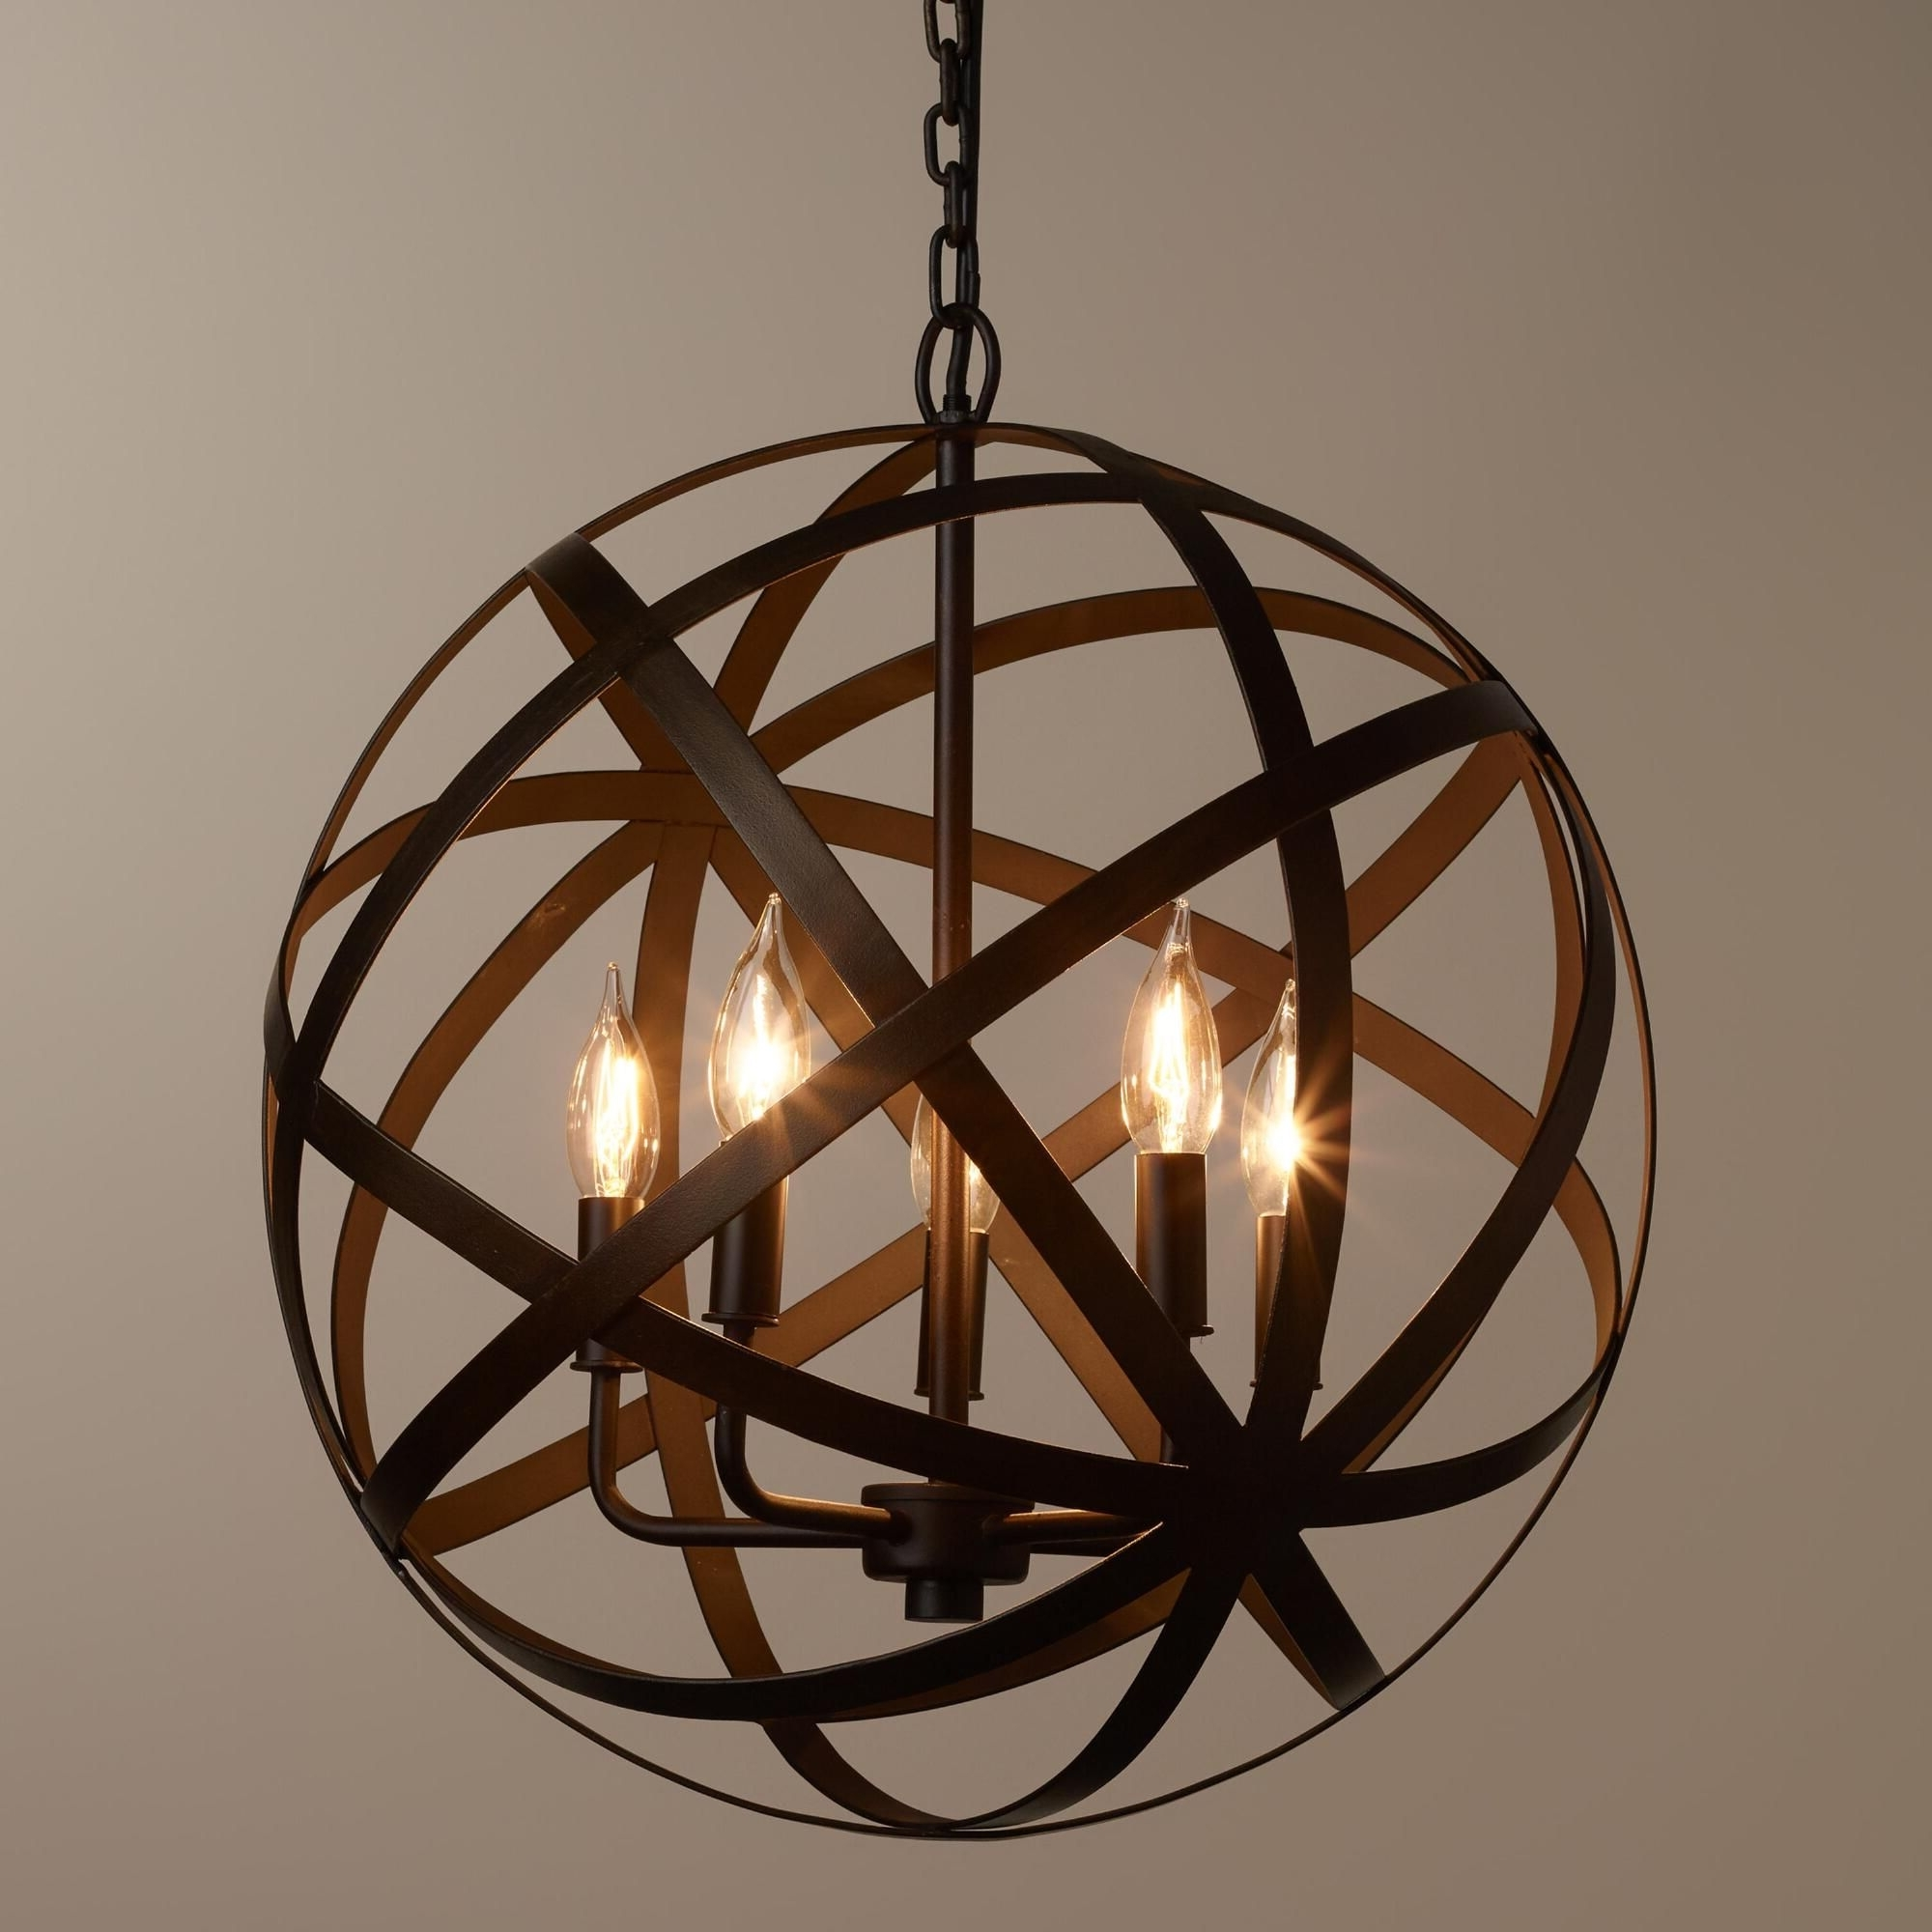 Most Recent Orb Chandelier Regarding We're Proud To Present Our Exclusive Metal Orb Chandelier, Finely (View 14 of 20)